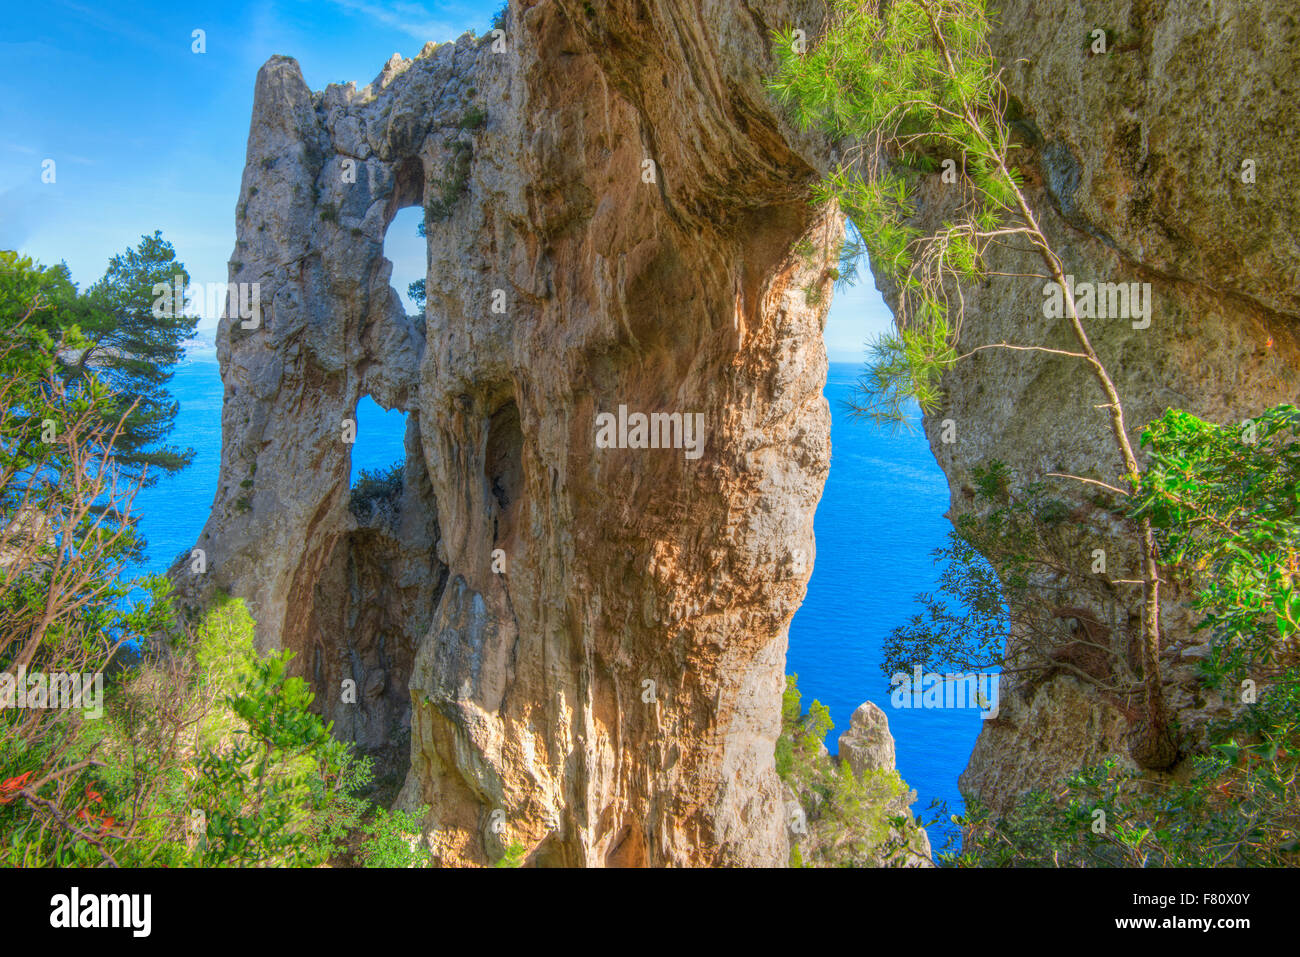 The Arch, quadriple natural arch on cliffs above Capri and Tyrrhenian Sea, Italy - Stock Image